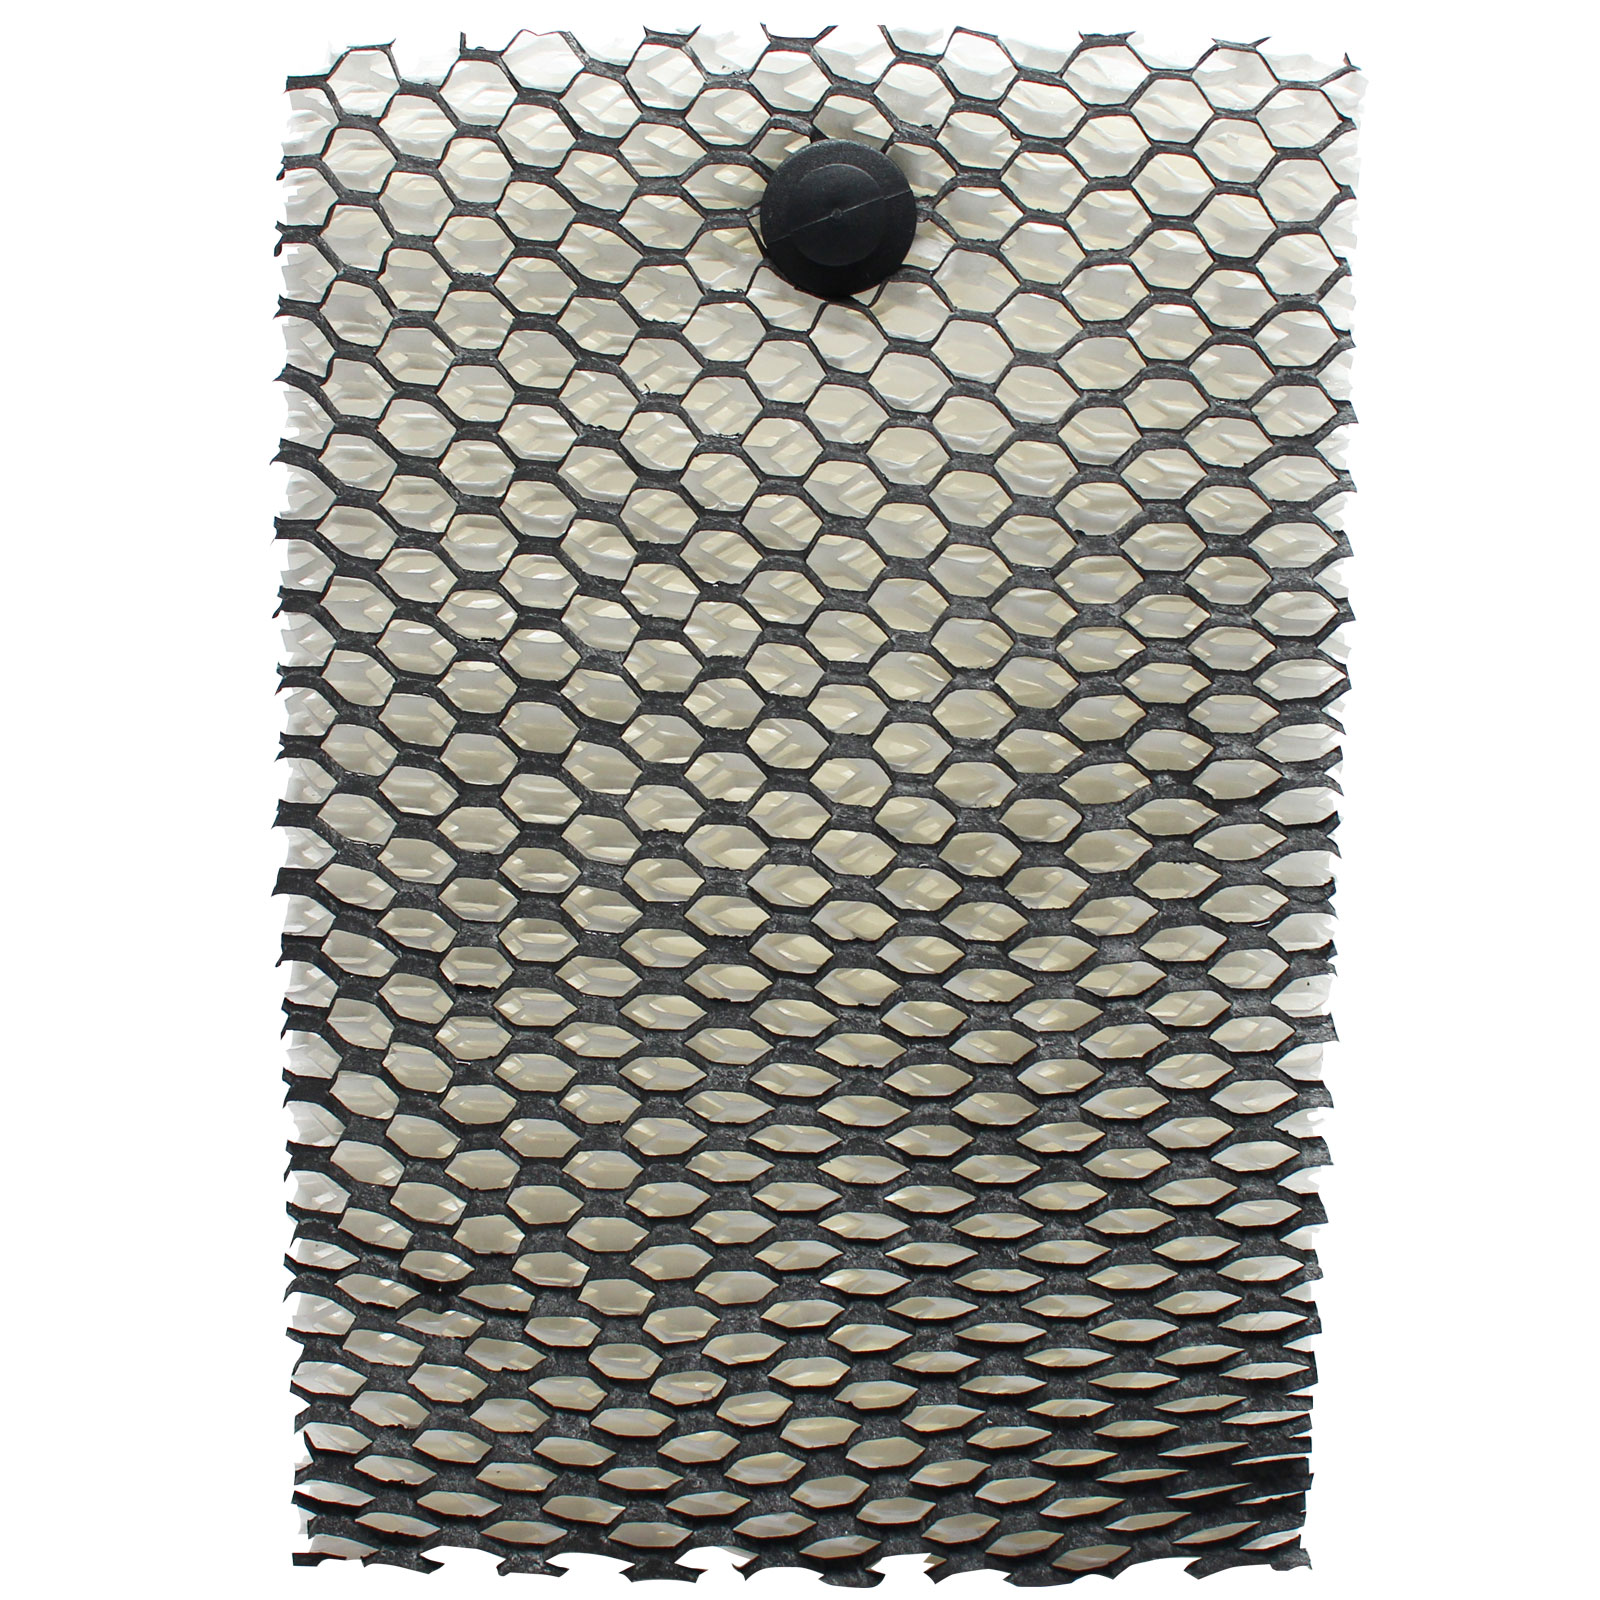 Replacement HWF100 Humidifier Filter for Holmes, Bionaire, Sunbeam - Compatible with Holmes HM630, Bionaire BCM646, Holmes HWF100, Sunbeam SCM630, Bionaire BCM740B, Sunbeam SCM7808, Bionaire BWF100 - image 1 de 4